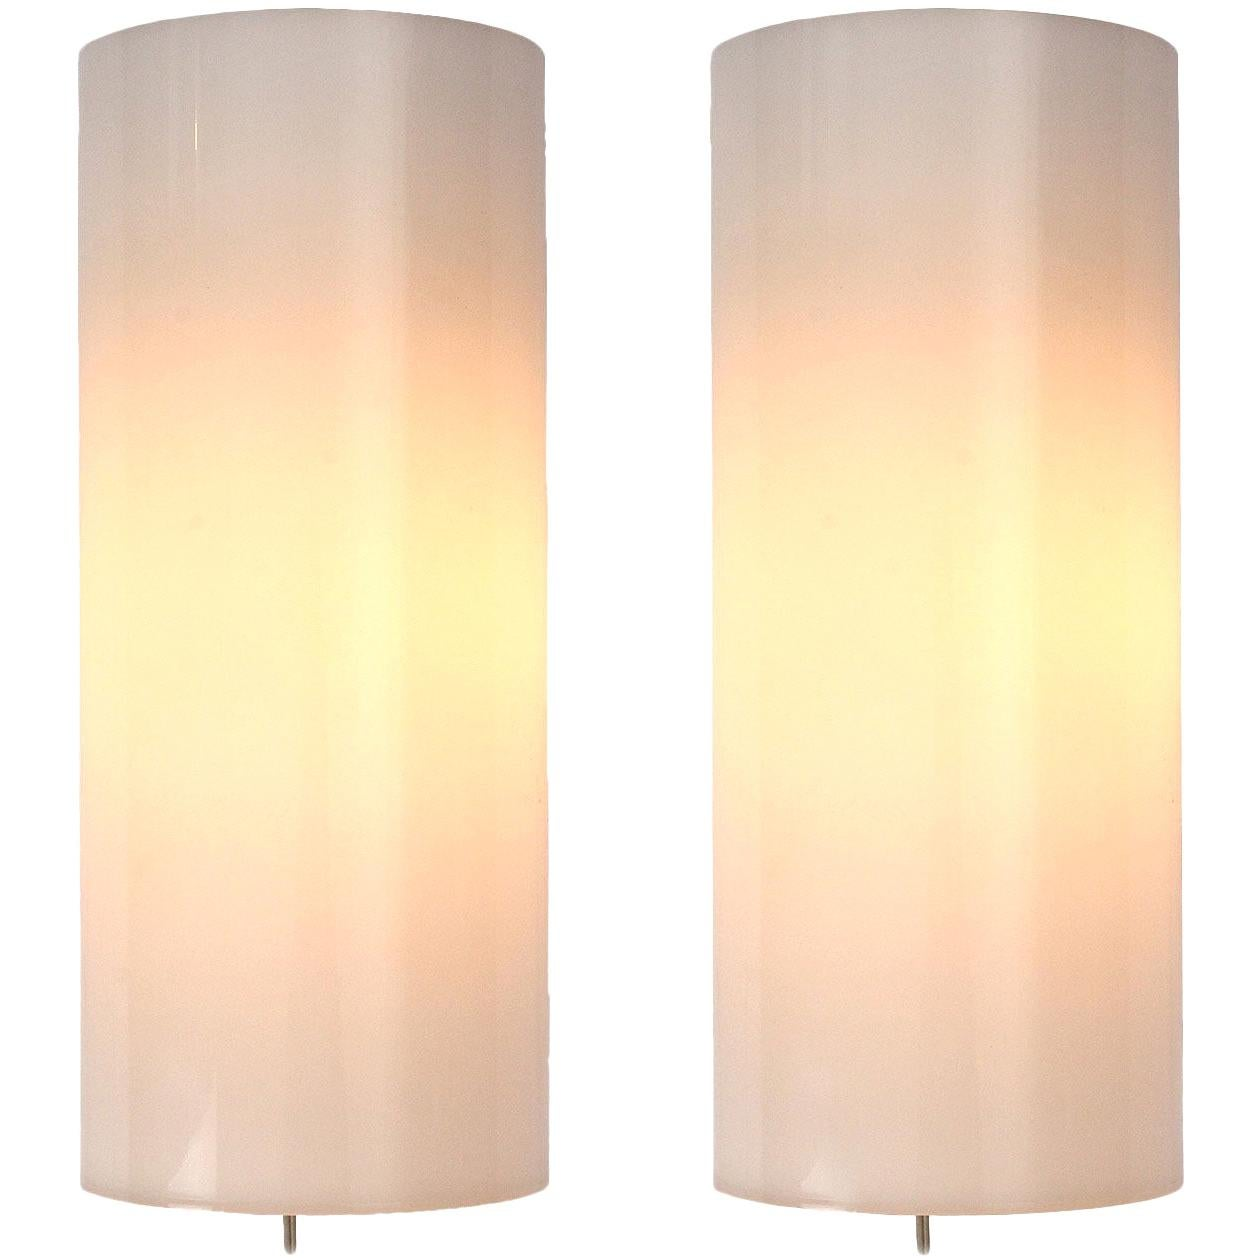 1960s Swedish Pair of Perspex Wall Sconces by Uno & Osten Kristiansson for Luxus